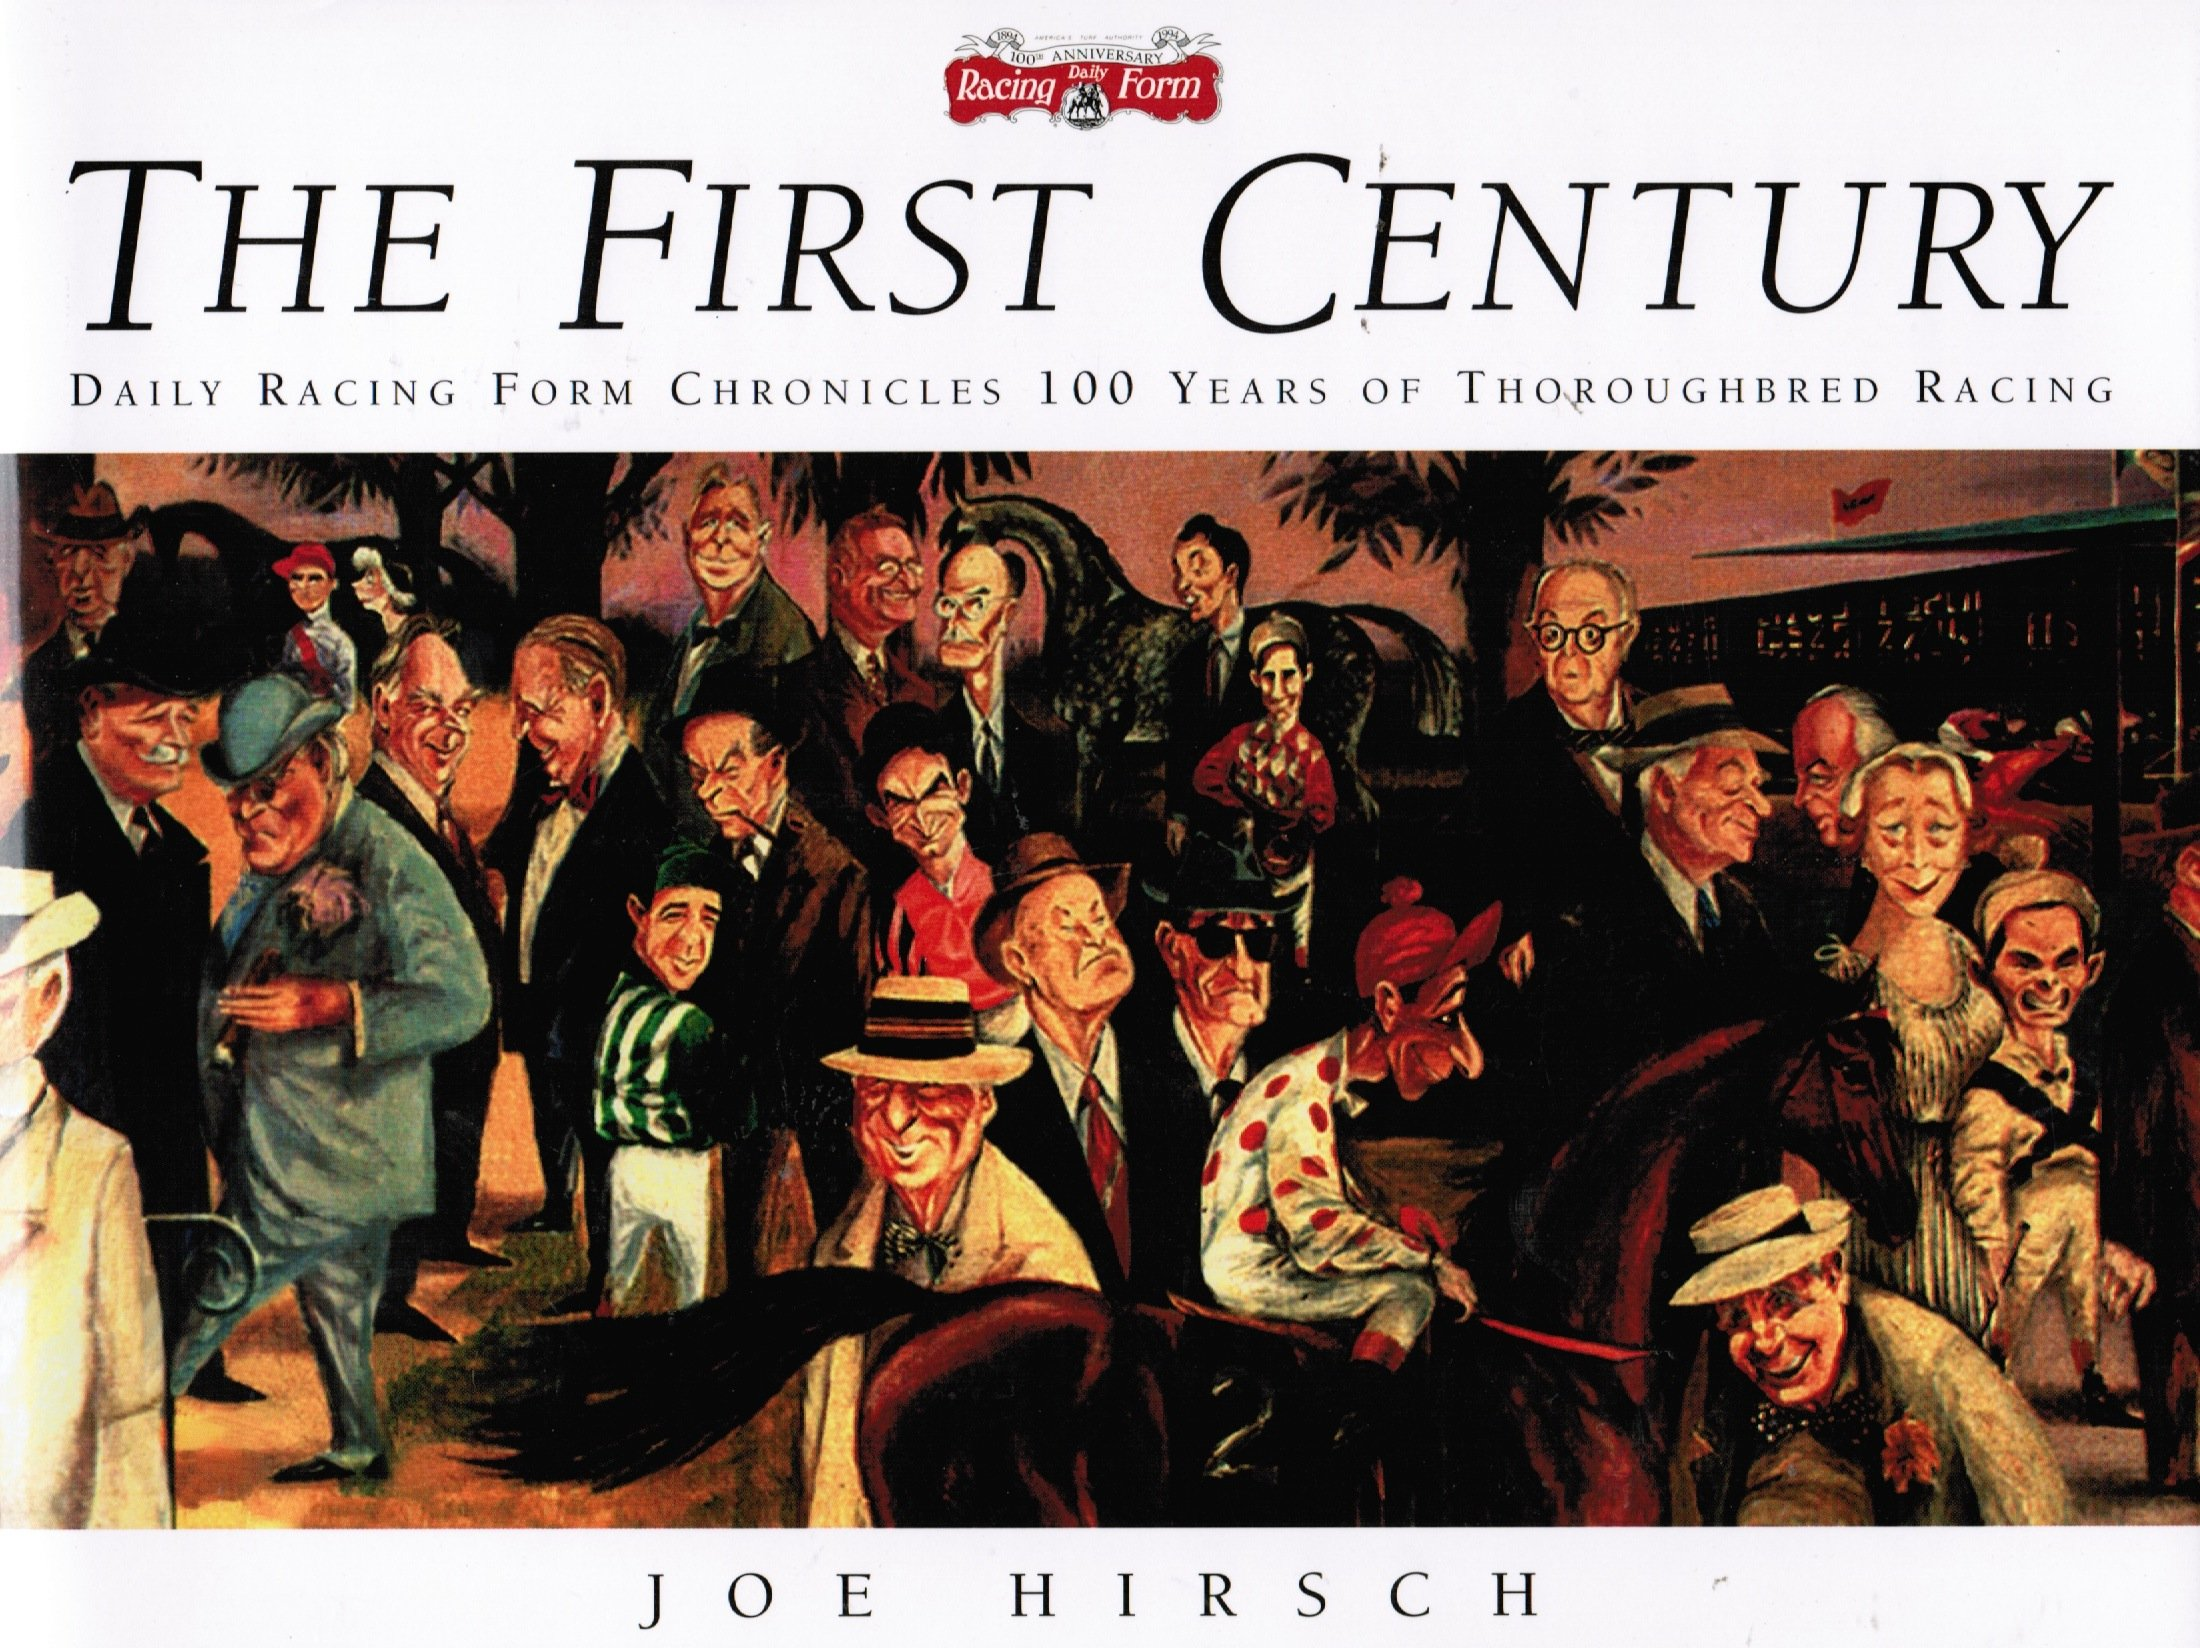 The first century daily racing form chronicles 100 years of the first century daily racing form chronicles 100 years of thoroughbred racing joe hirsch 9780964849310 amazon books falaconquin